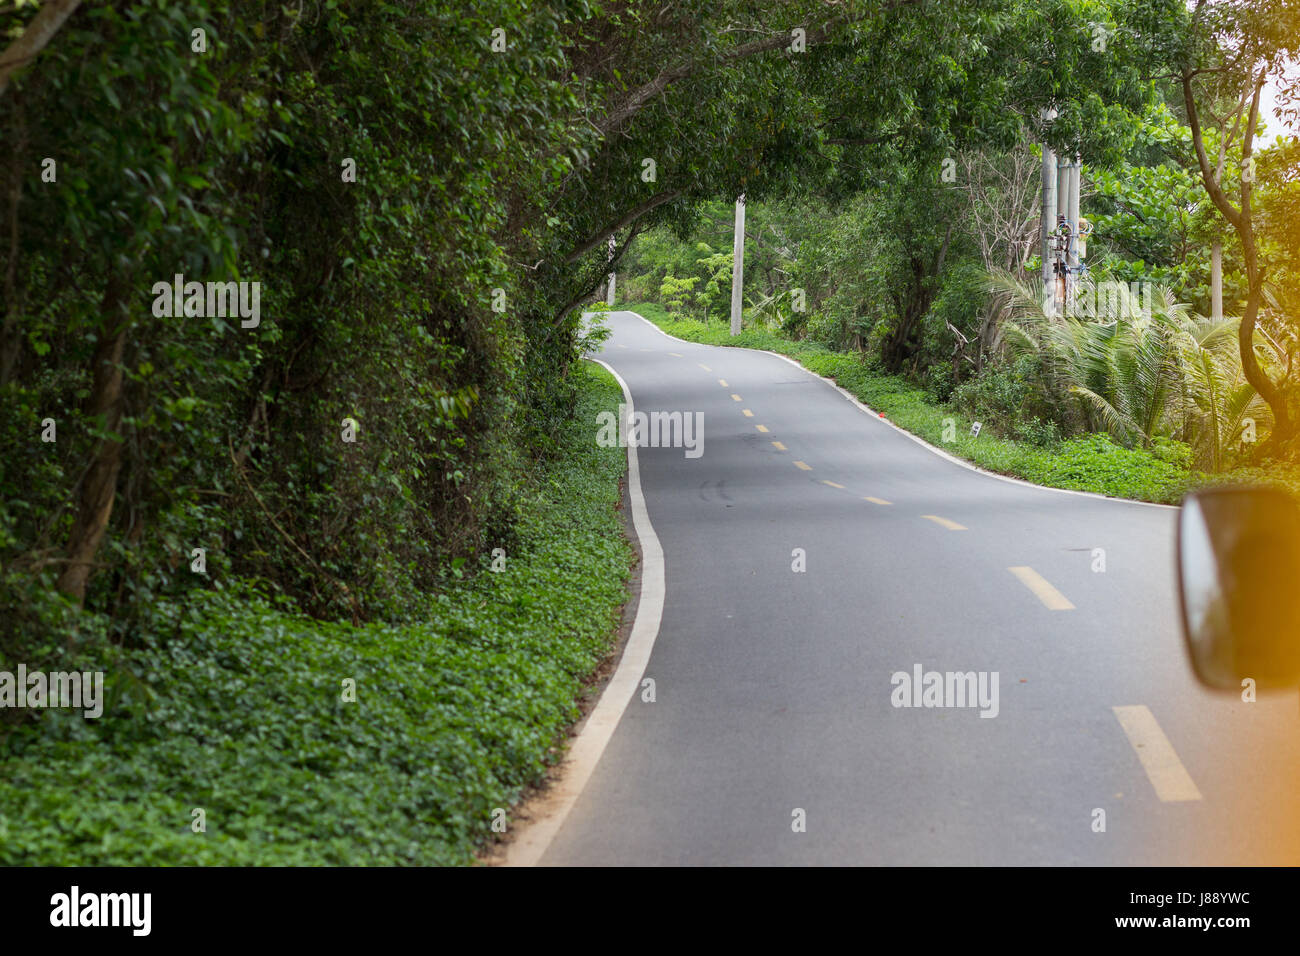 An asphalted winding road in a dense tropical forest with gleams through the trees through which sunlight penetrates - Stock Image